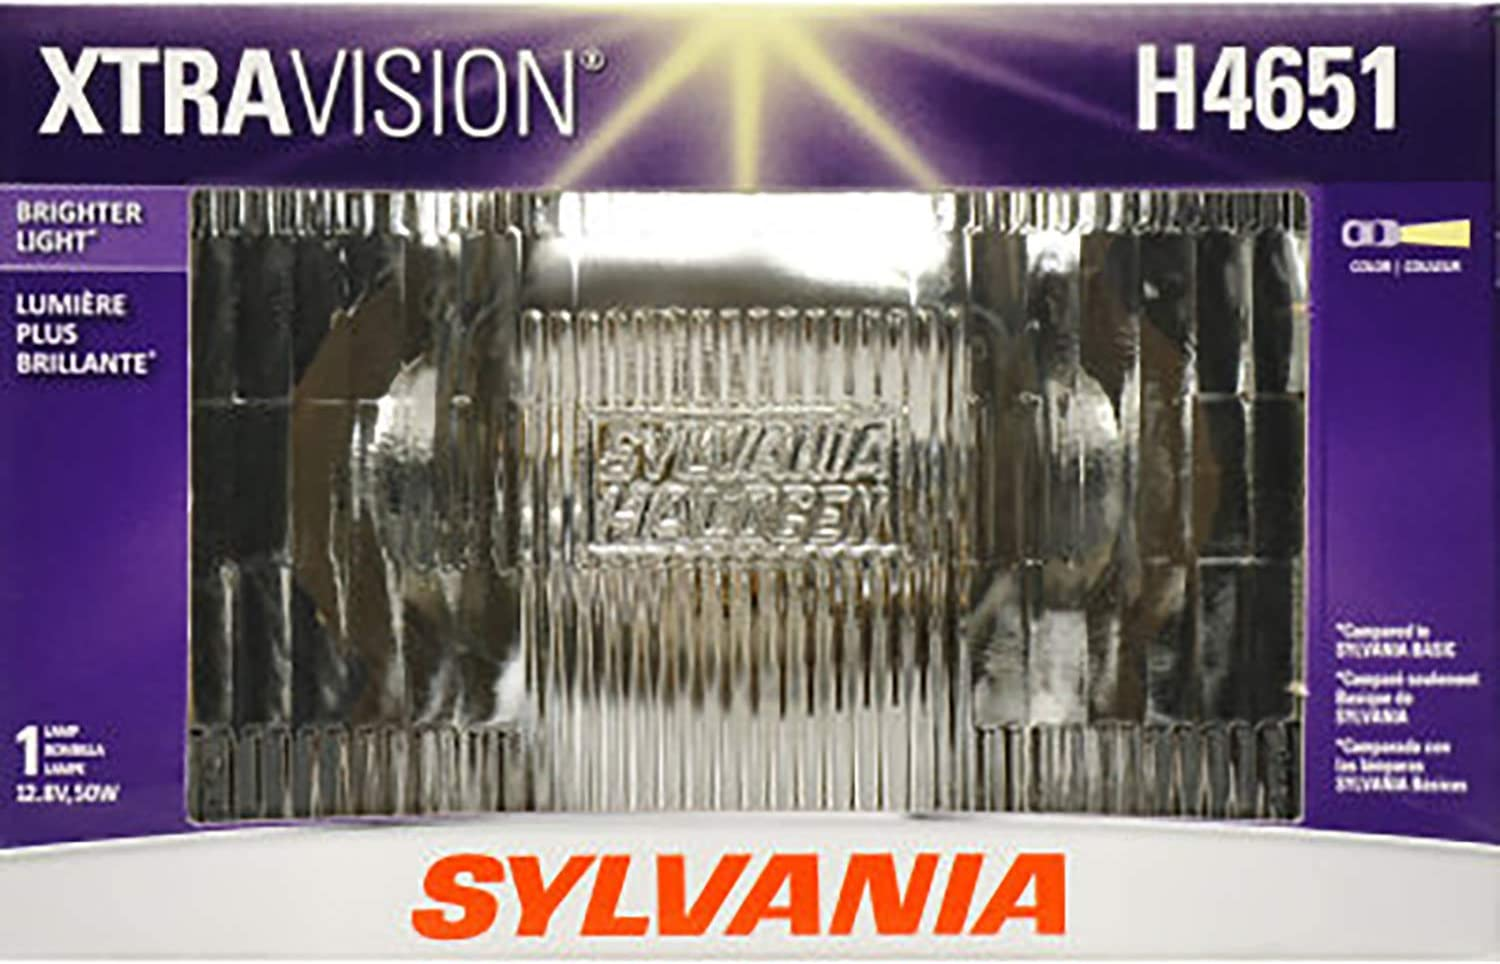 SYLVANIA - H4651 XtraVision Sealed Beam Headlight - Halogen Headlight Replacement Delivers More Downroad Visibility (Contains 1 Bulb)